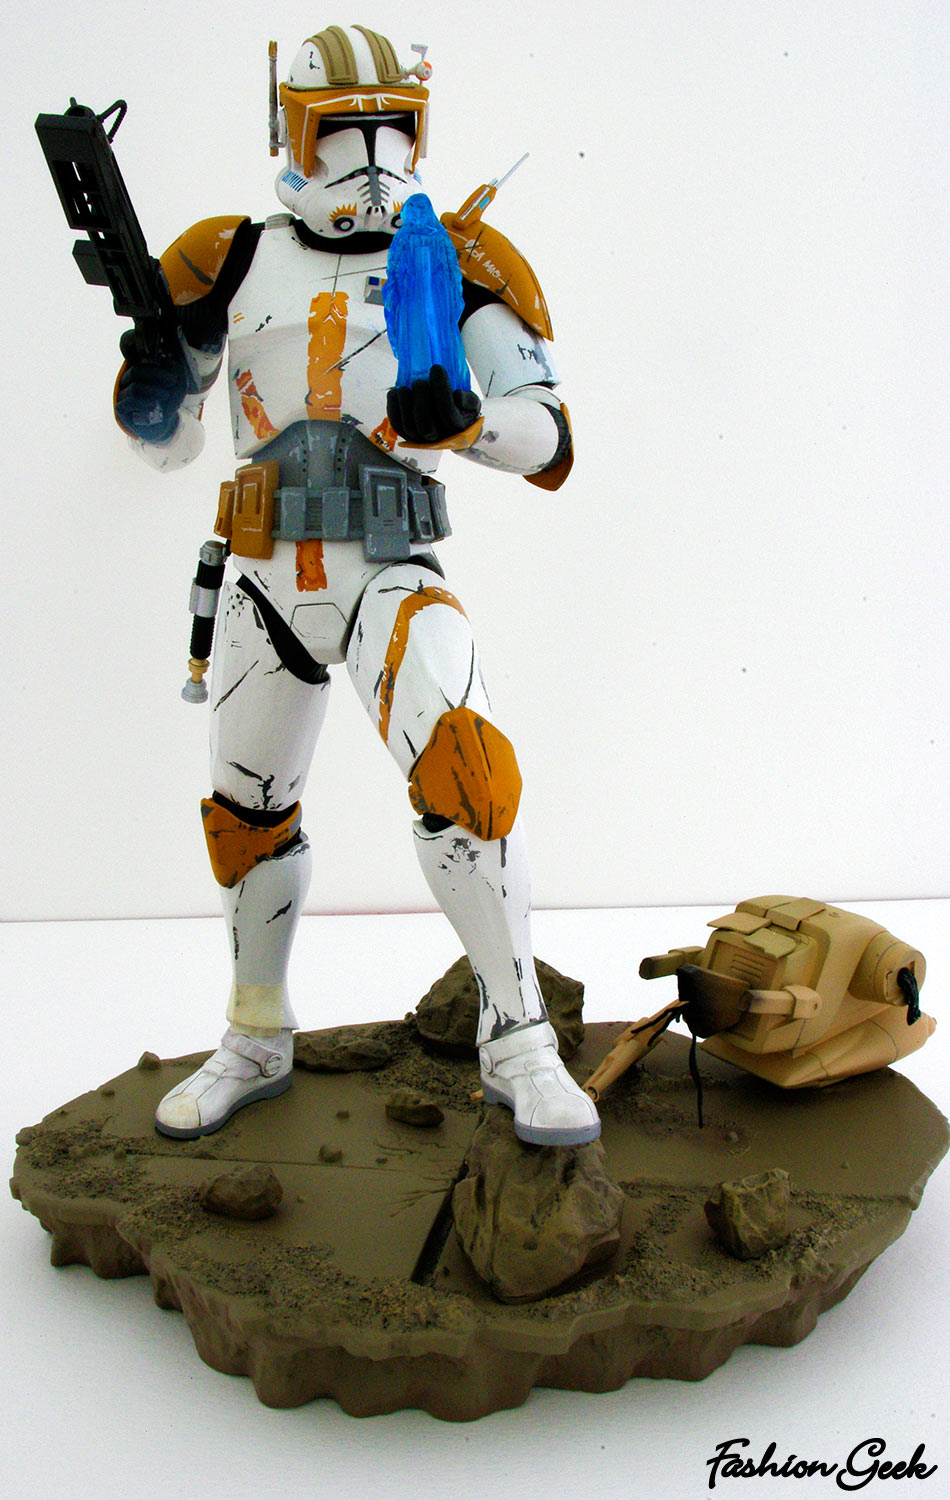 Commander-Cody-star-wars-figurine11